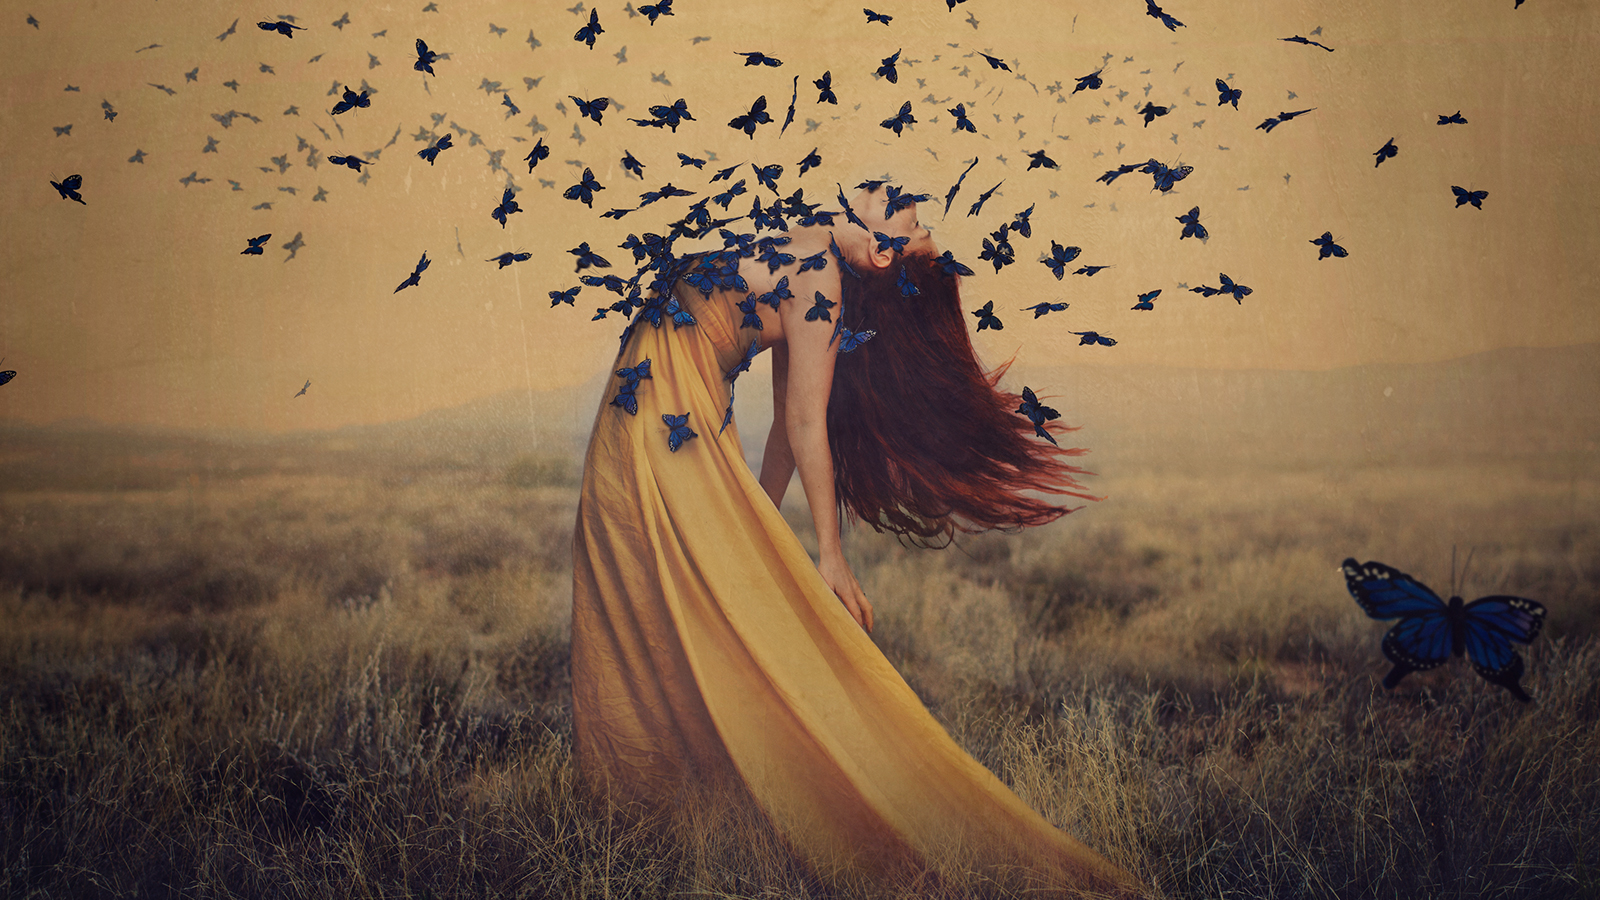 Fine art photography the complete guide with brooke shaden creativelive